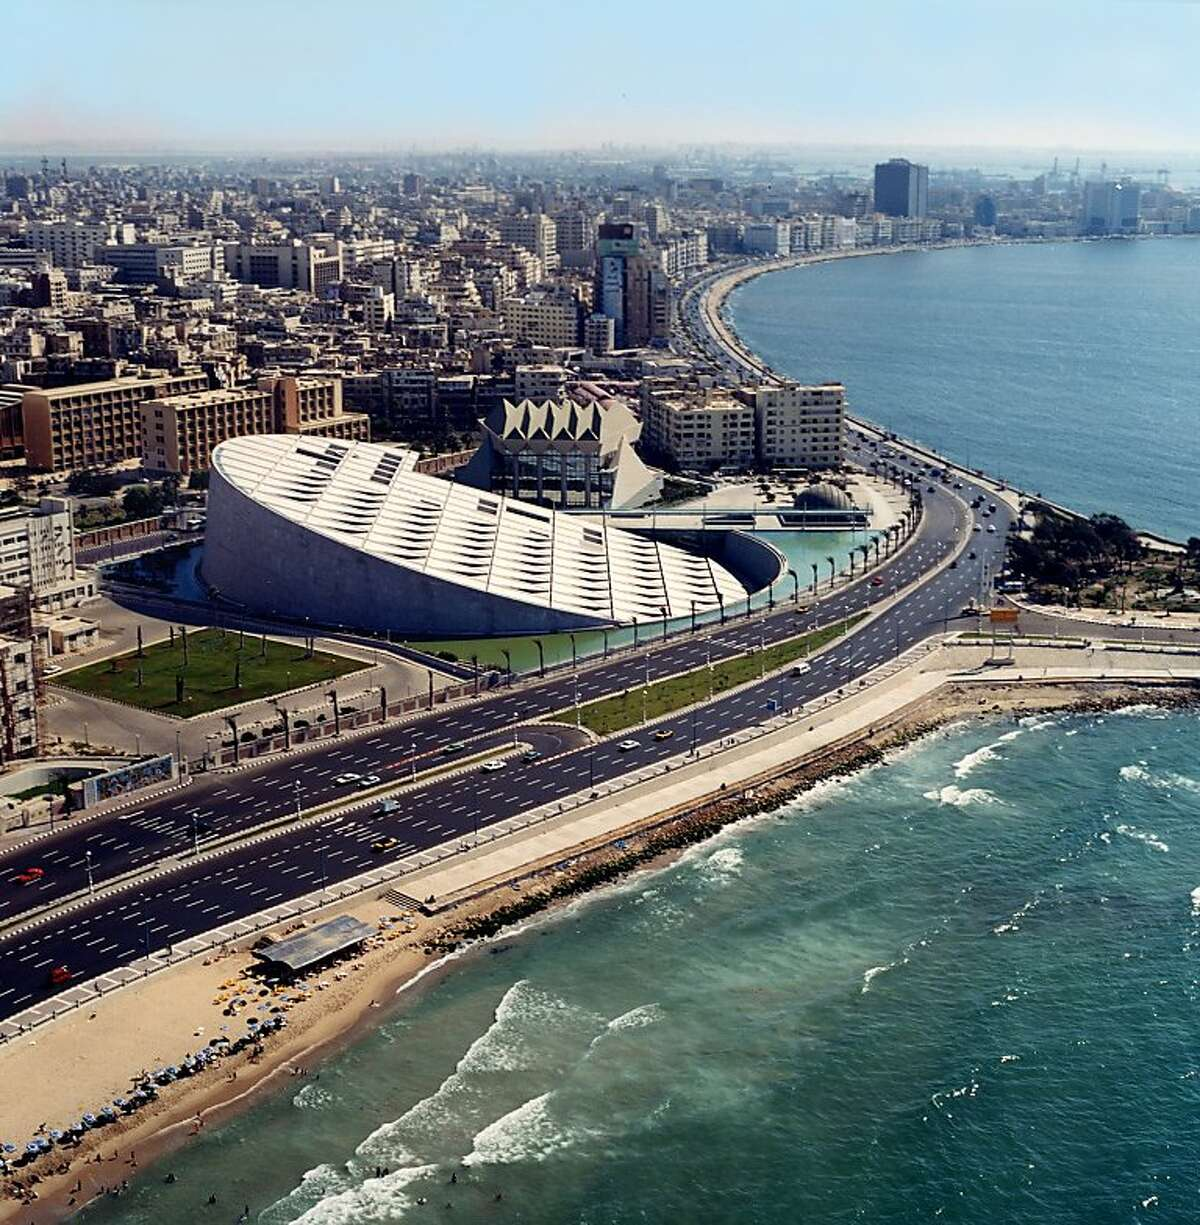 Bibliotheca Alexandrina in Alexandria, Egypt, which opened in 2001, was the first major project by Snohetta, the architecture firm selected to design the new wing of SFMOMA